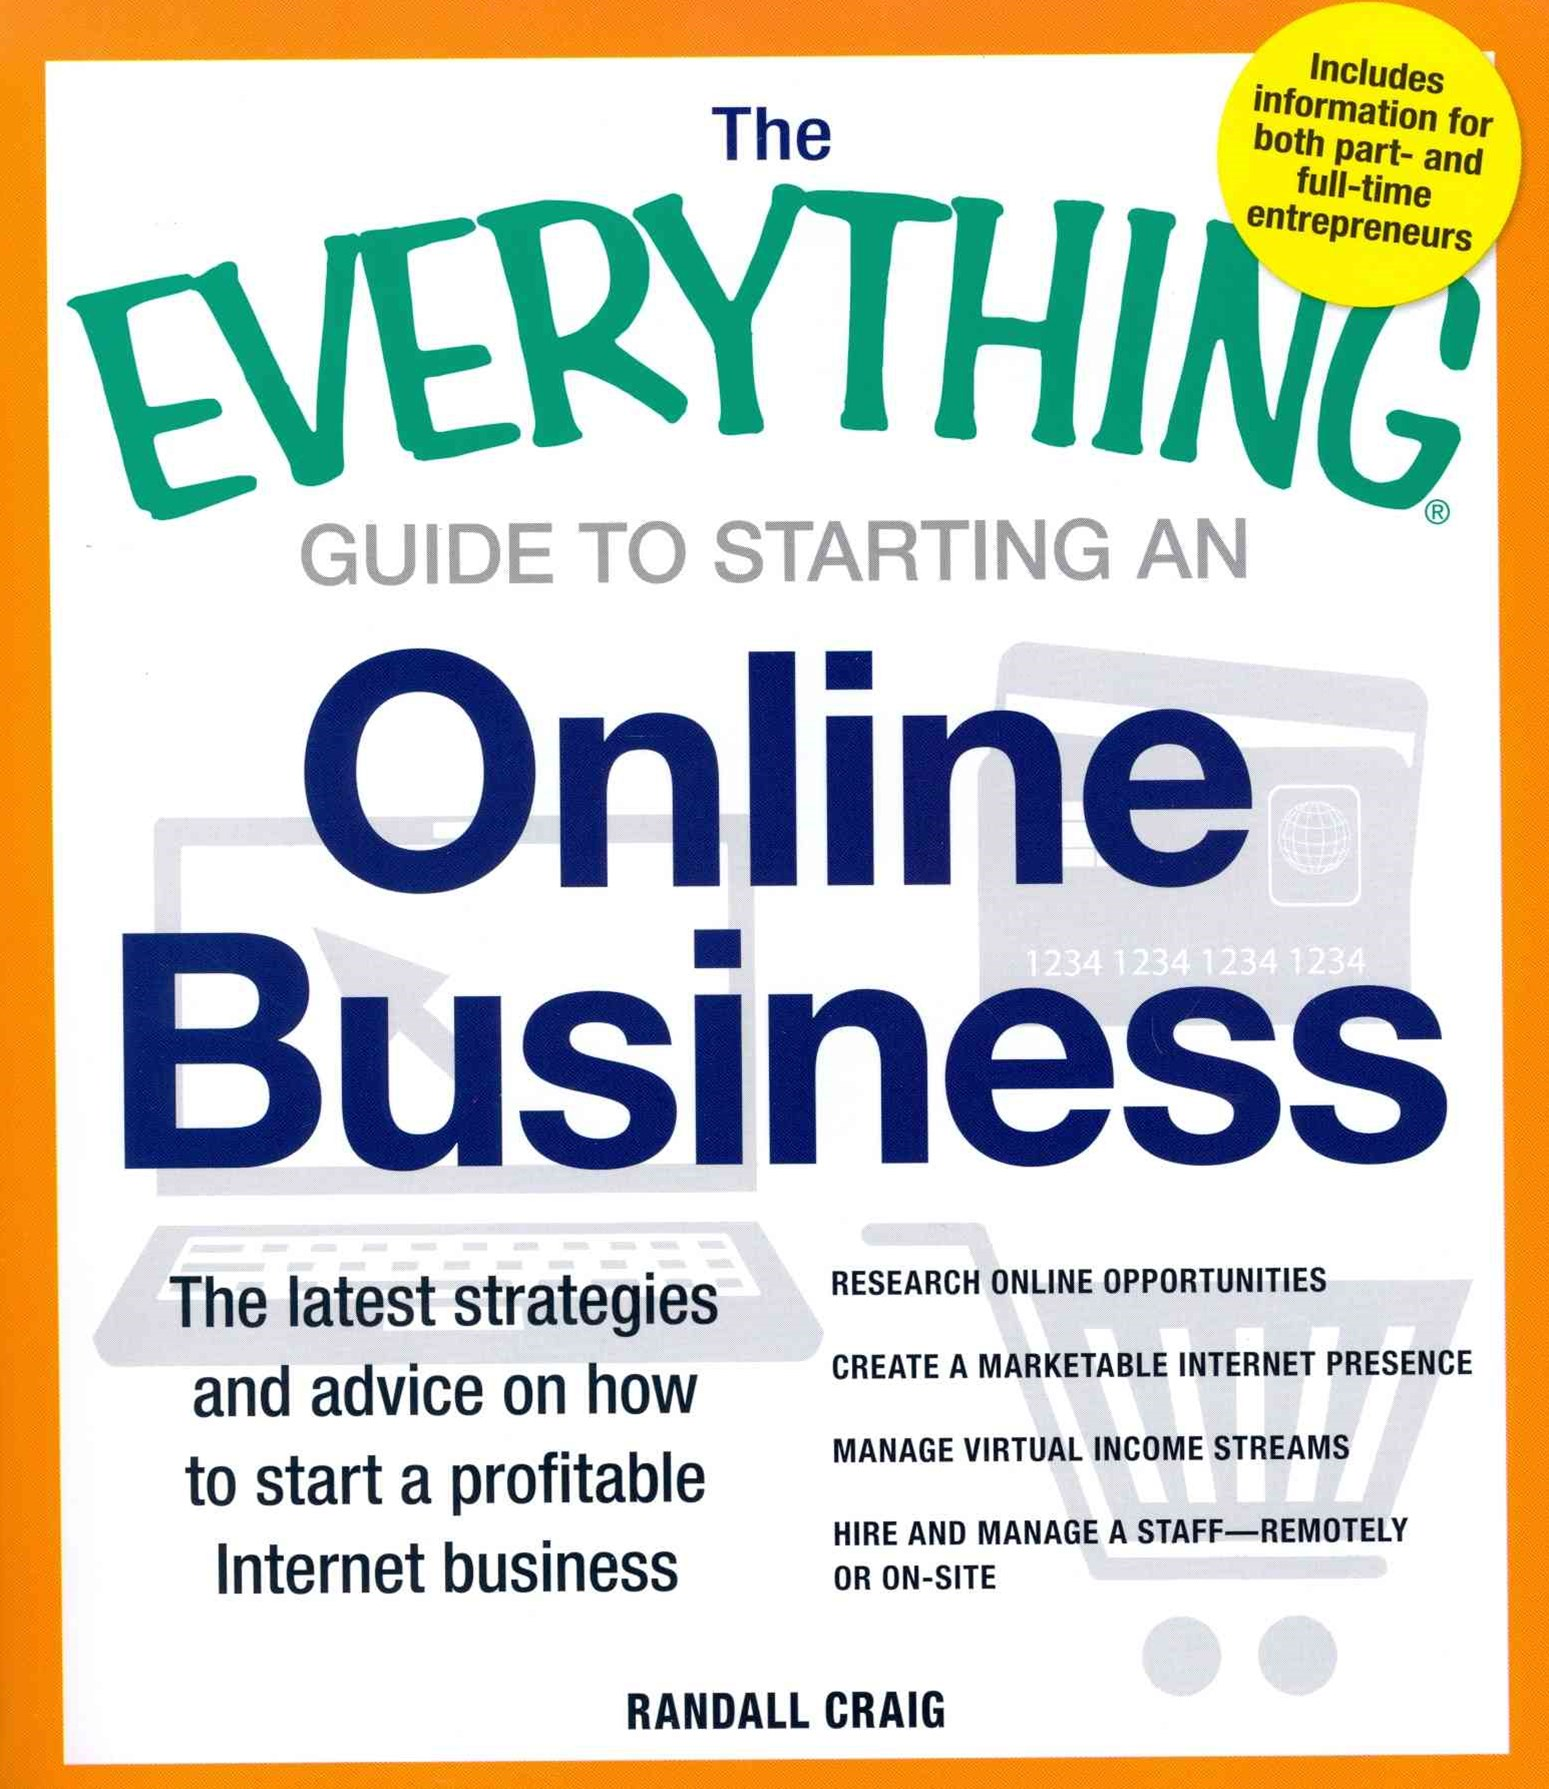 Guide to Starting an Online Business